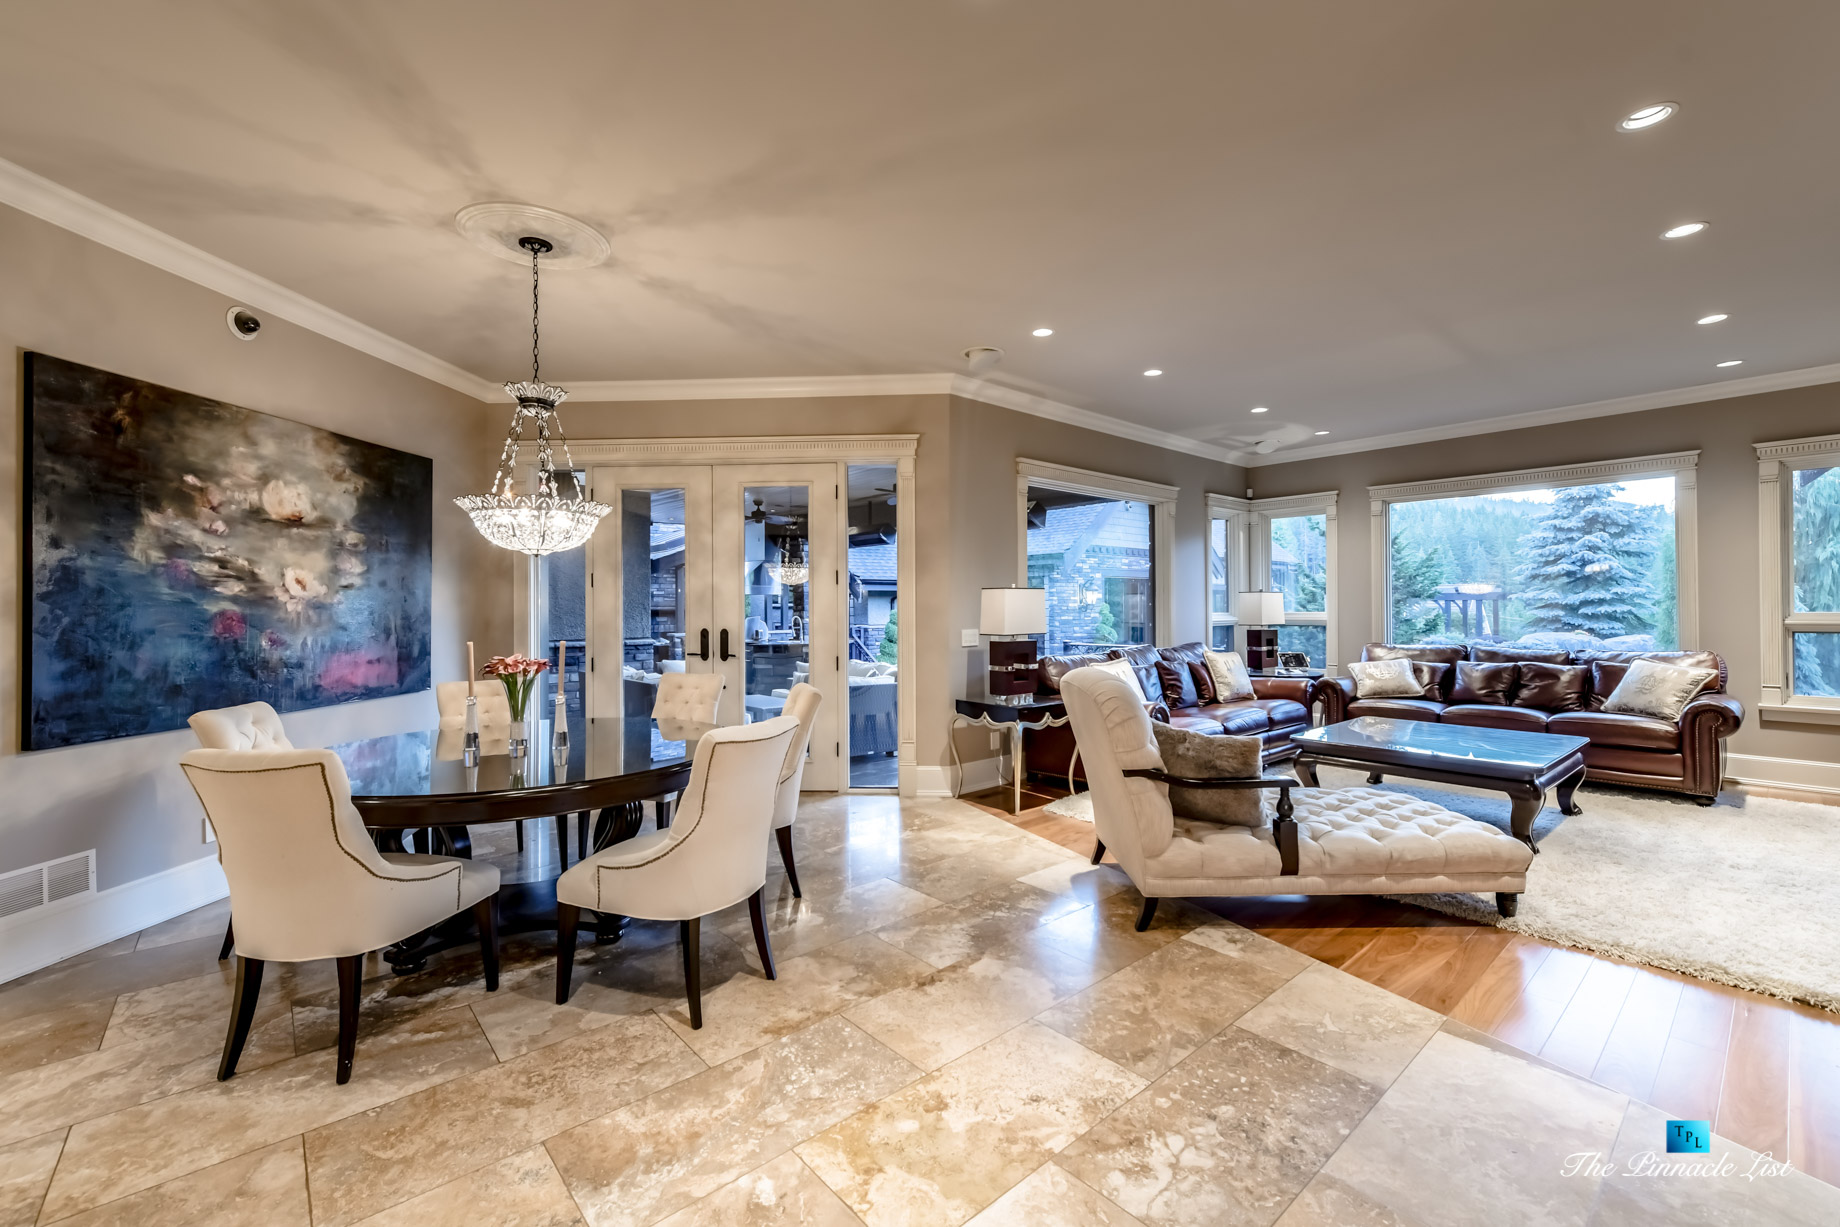 3053 Anmore Creek Way, Anmore, BC, Canada - Kitchen Table and Family Room - Luxury Real Estate - Greater Vancouver Home